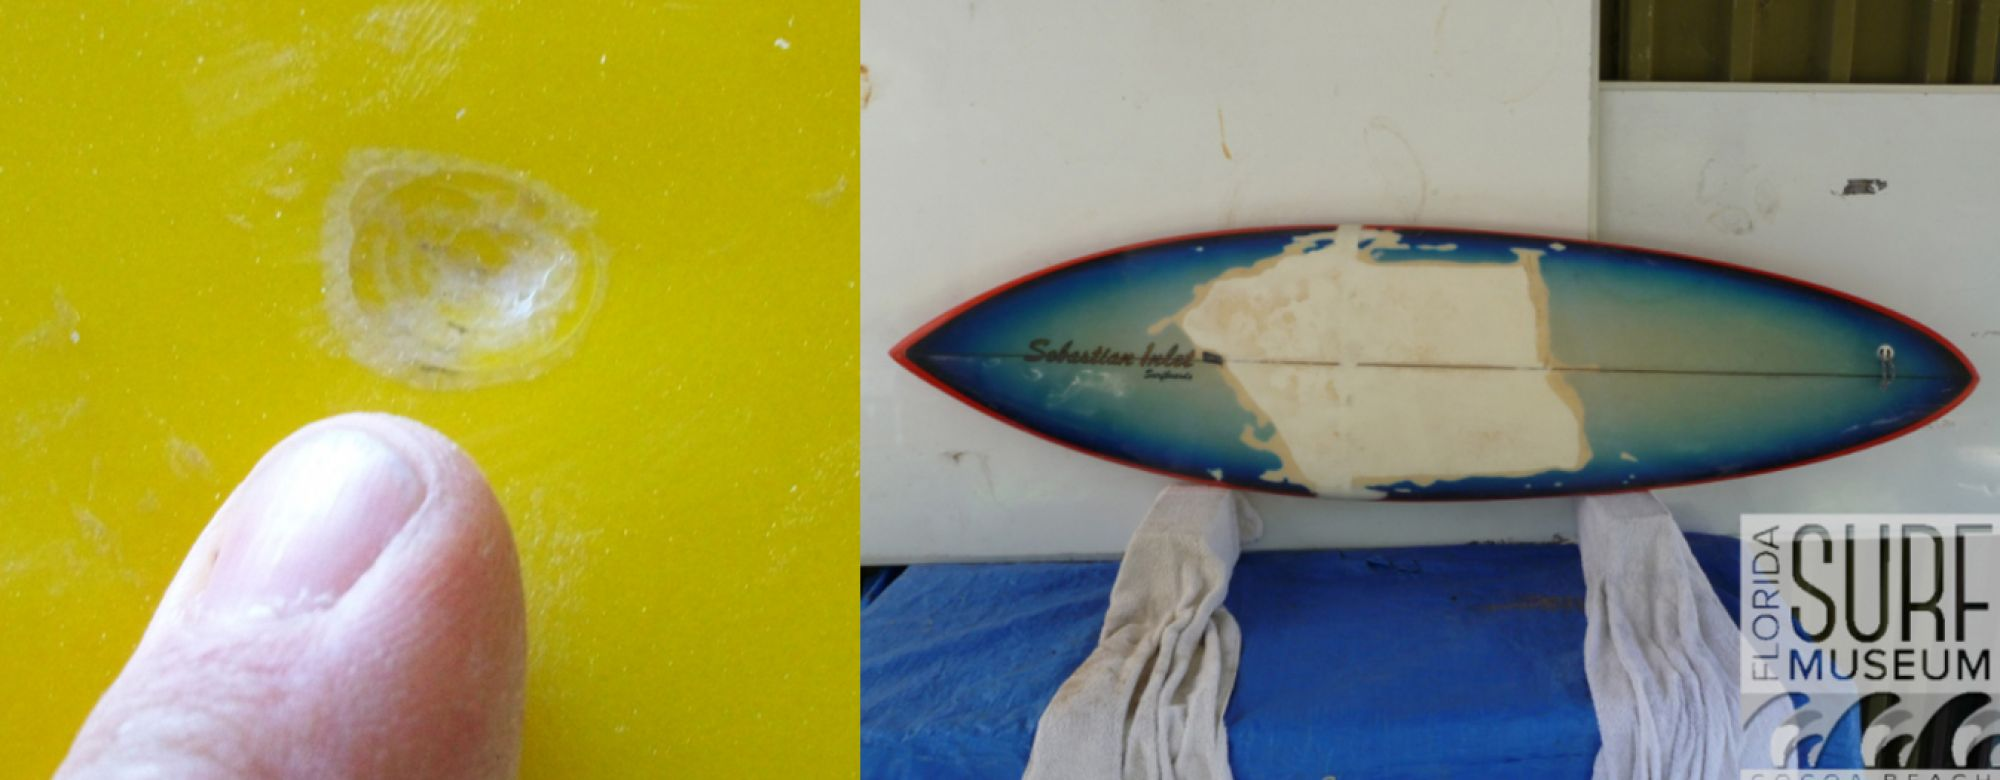 buying-a-used-surfboard